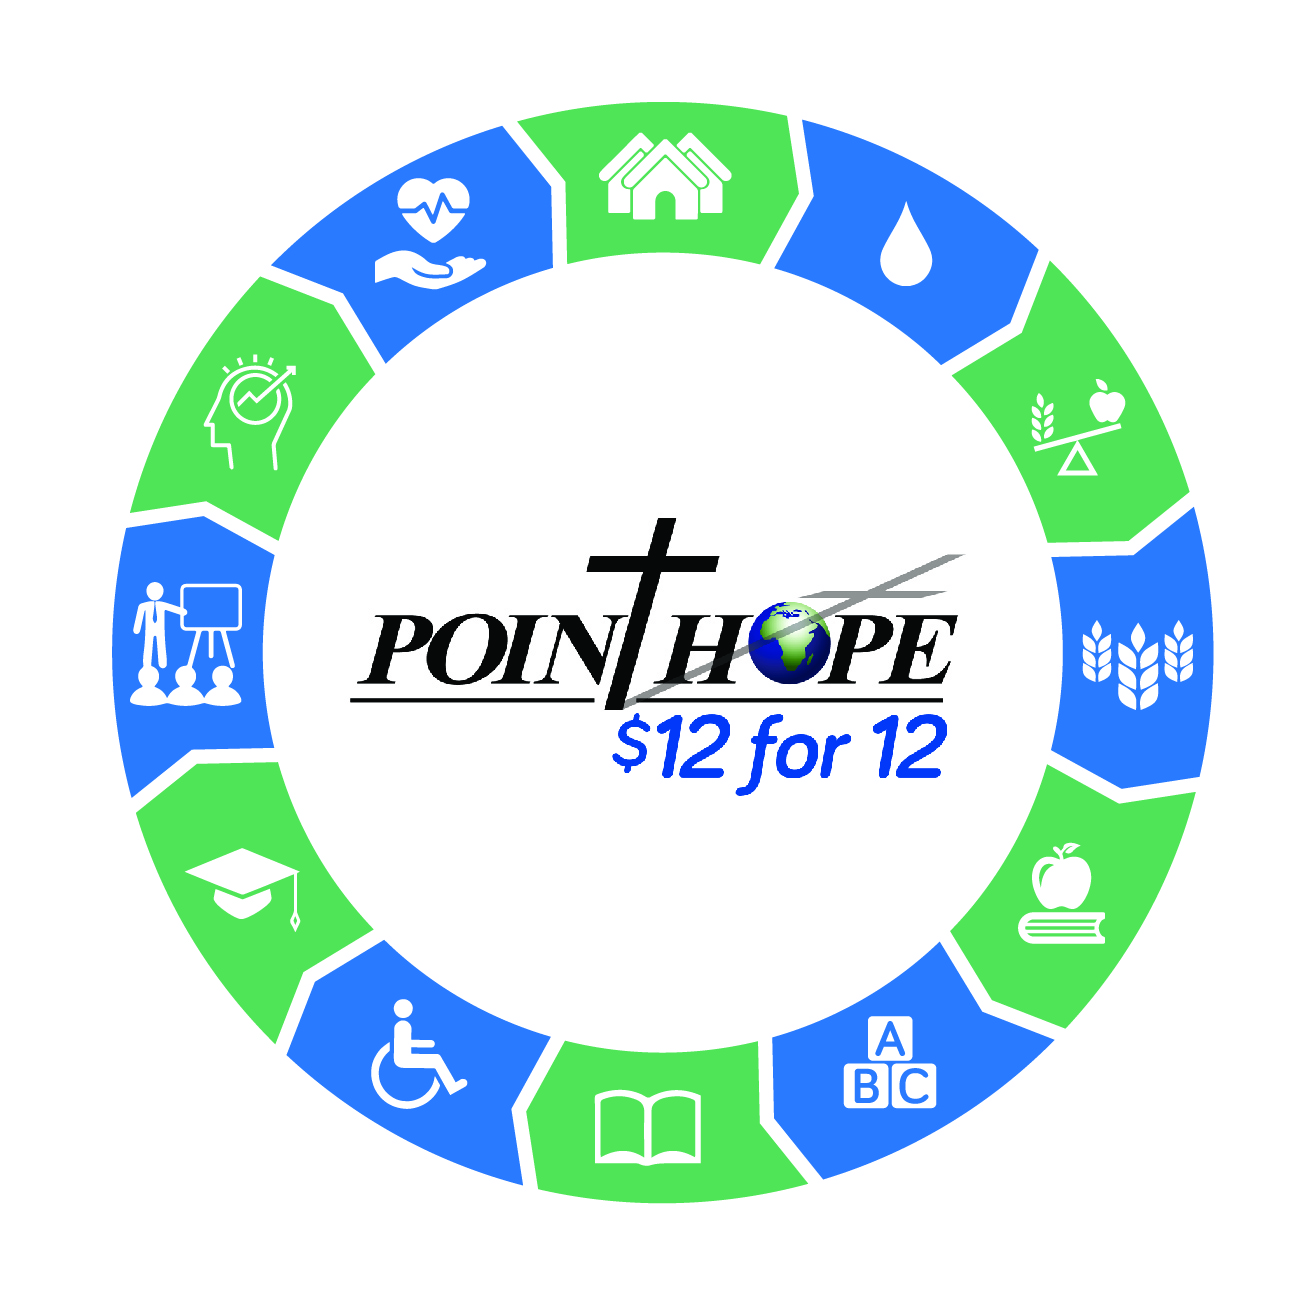 Your designated gift of $12 for 12 months allows Point Hope to maintain the foundation of our work with vulnerable persons in Ghana.